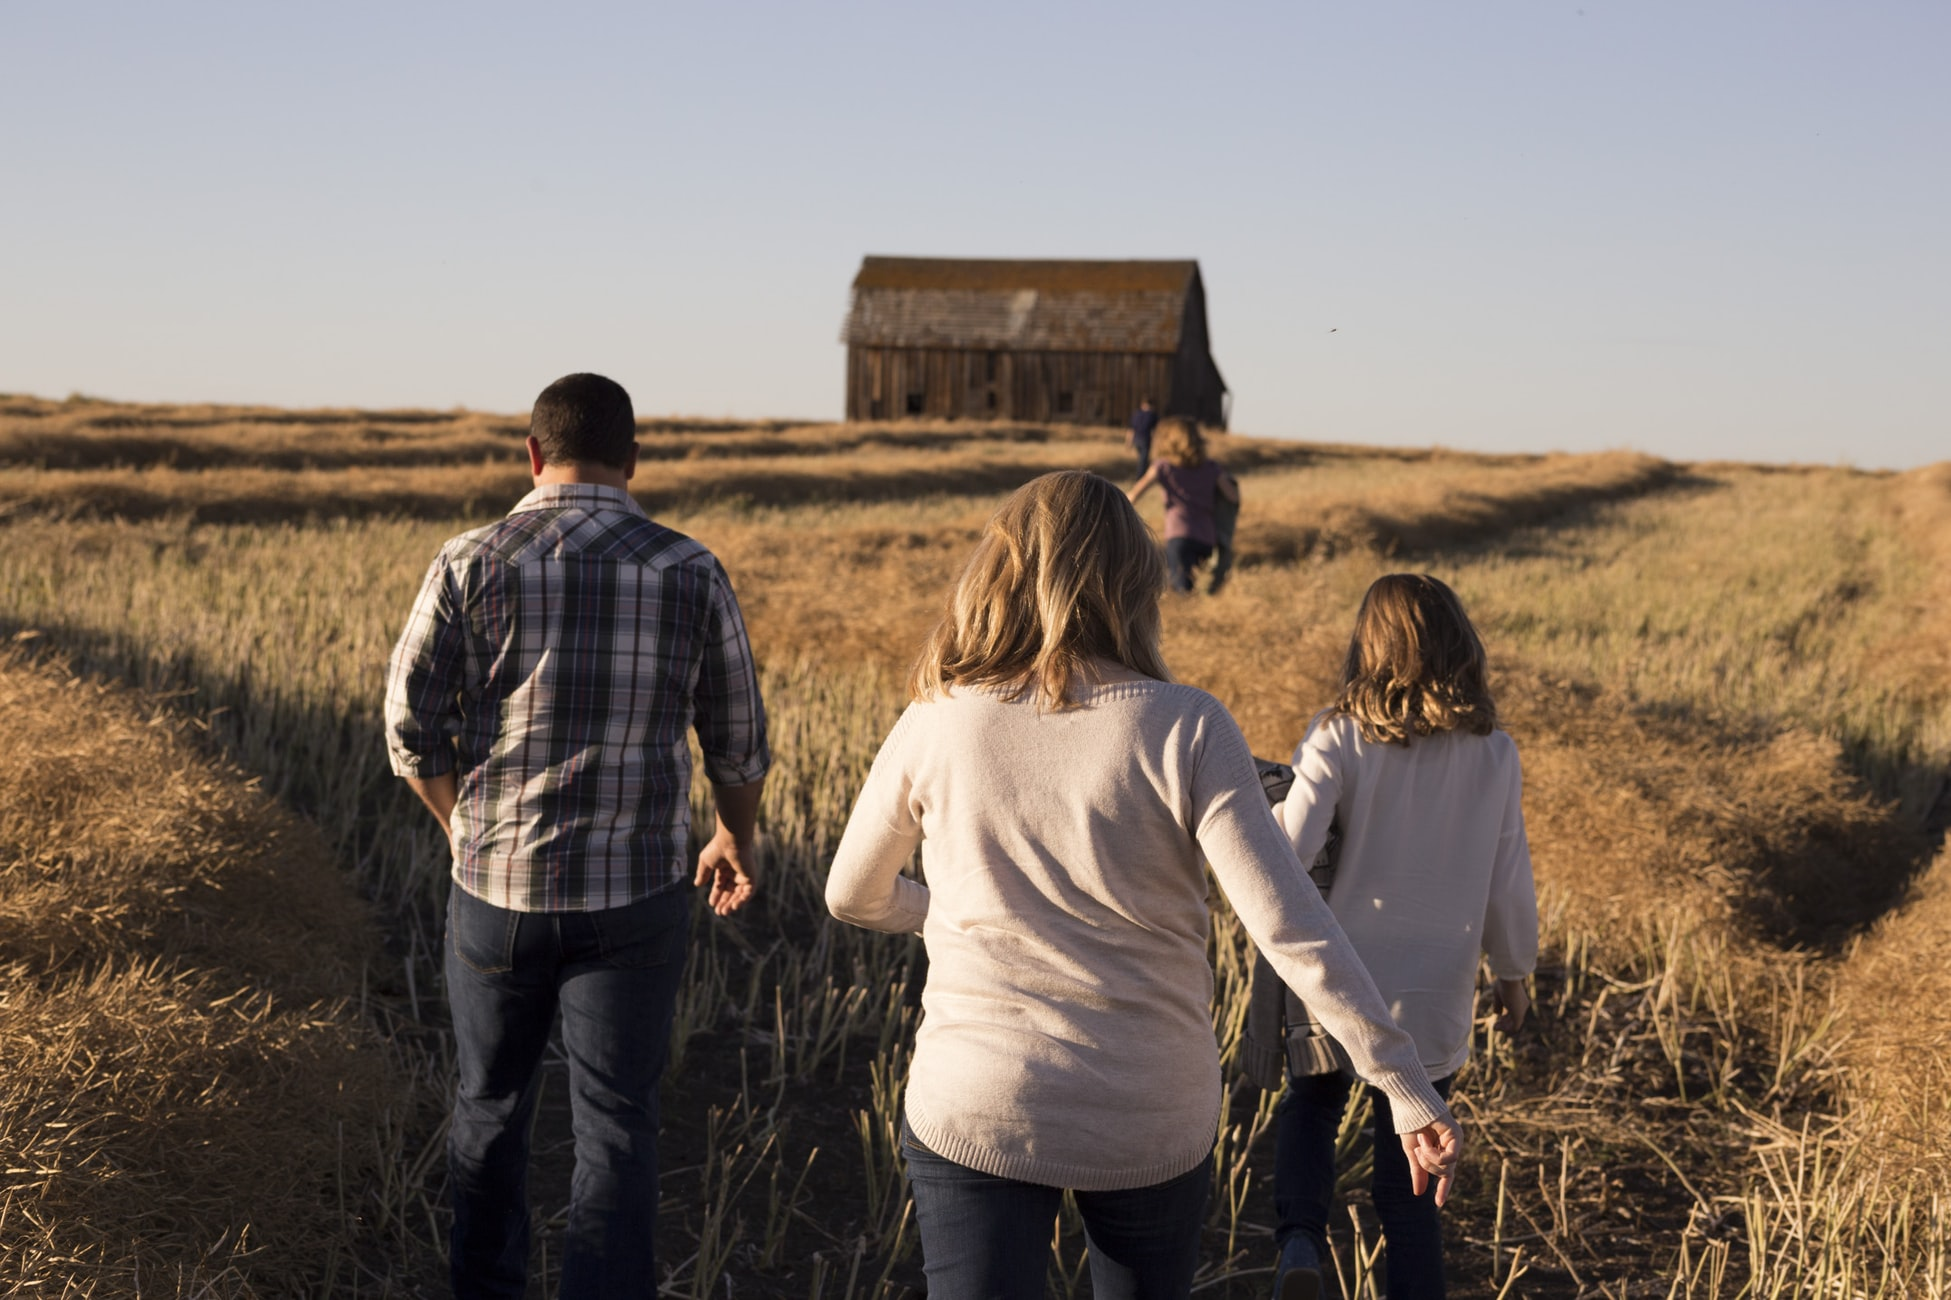 A family following its tradition - getting to know you questions